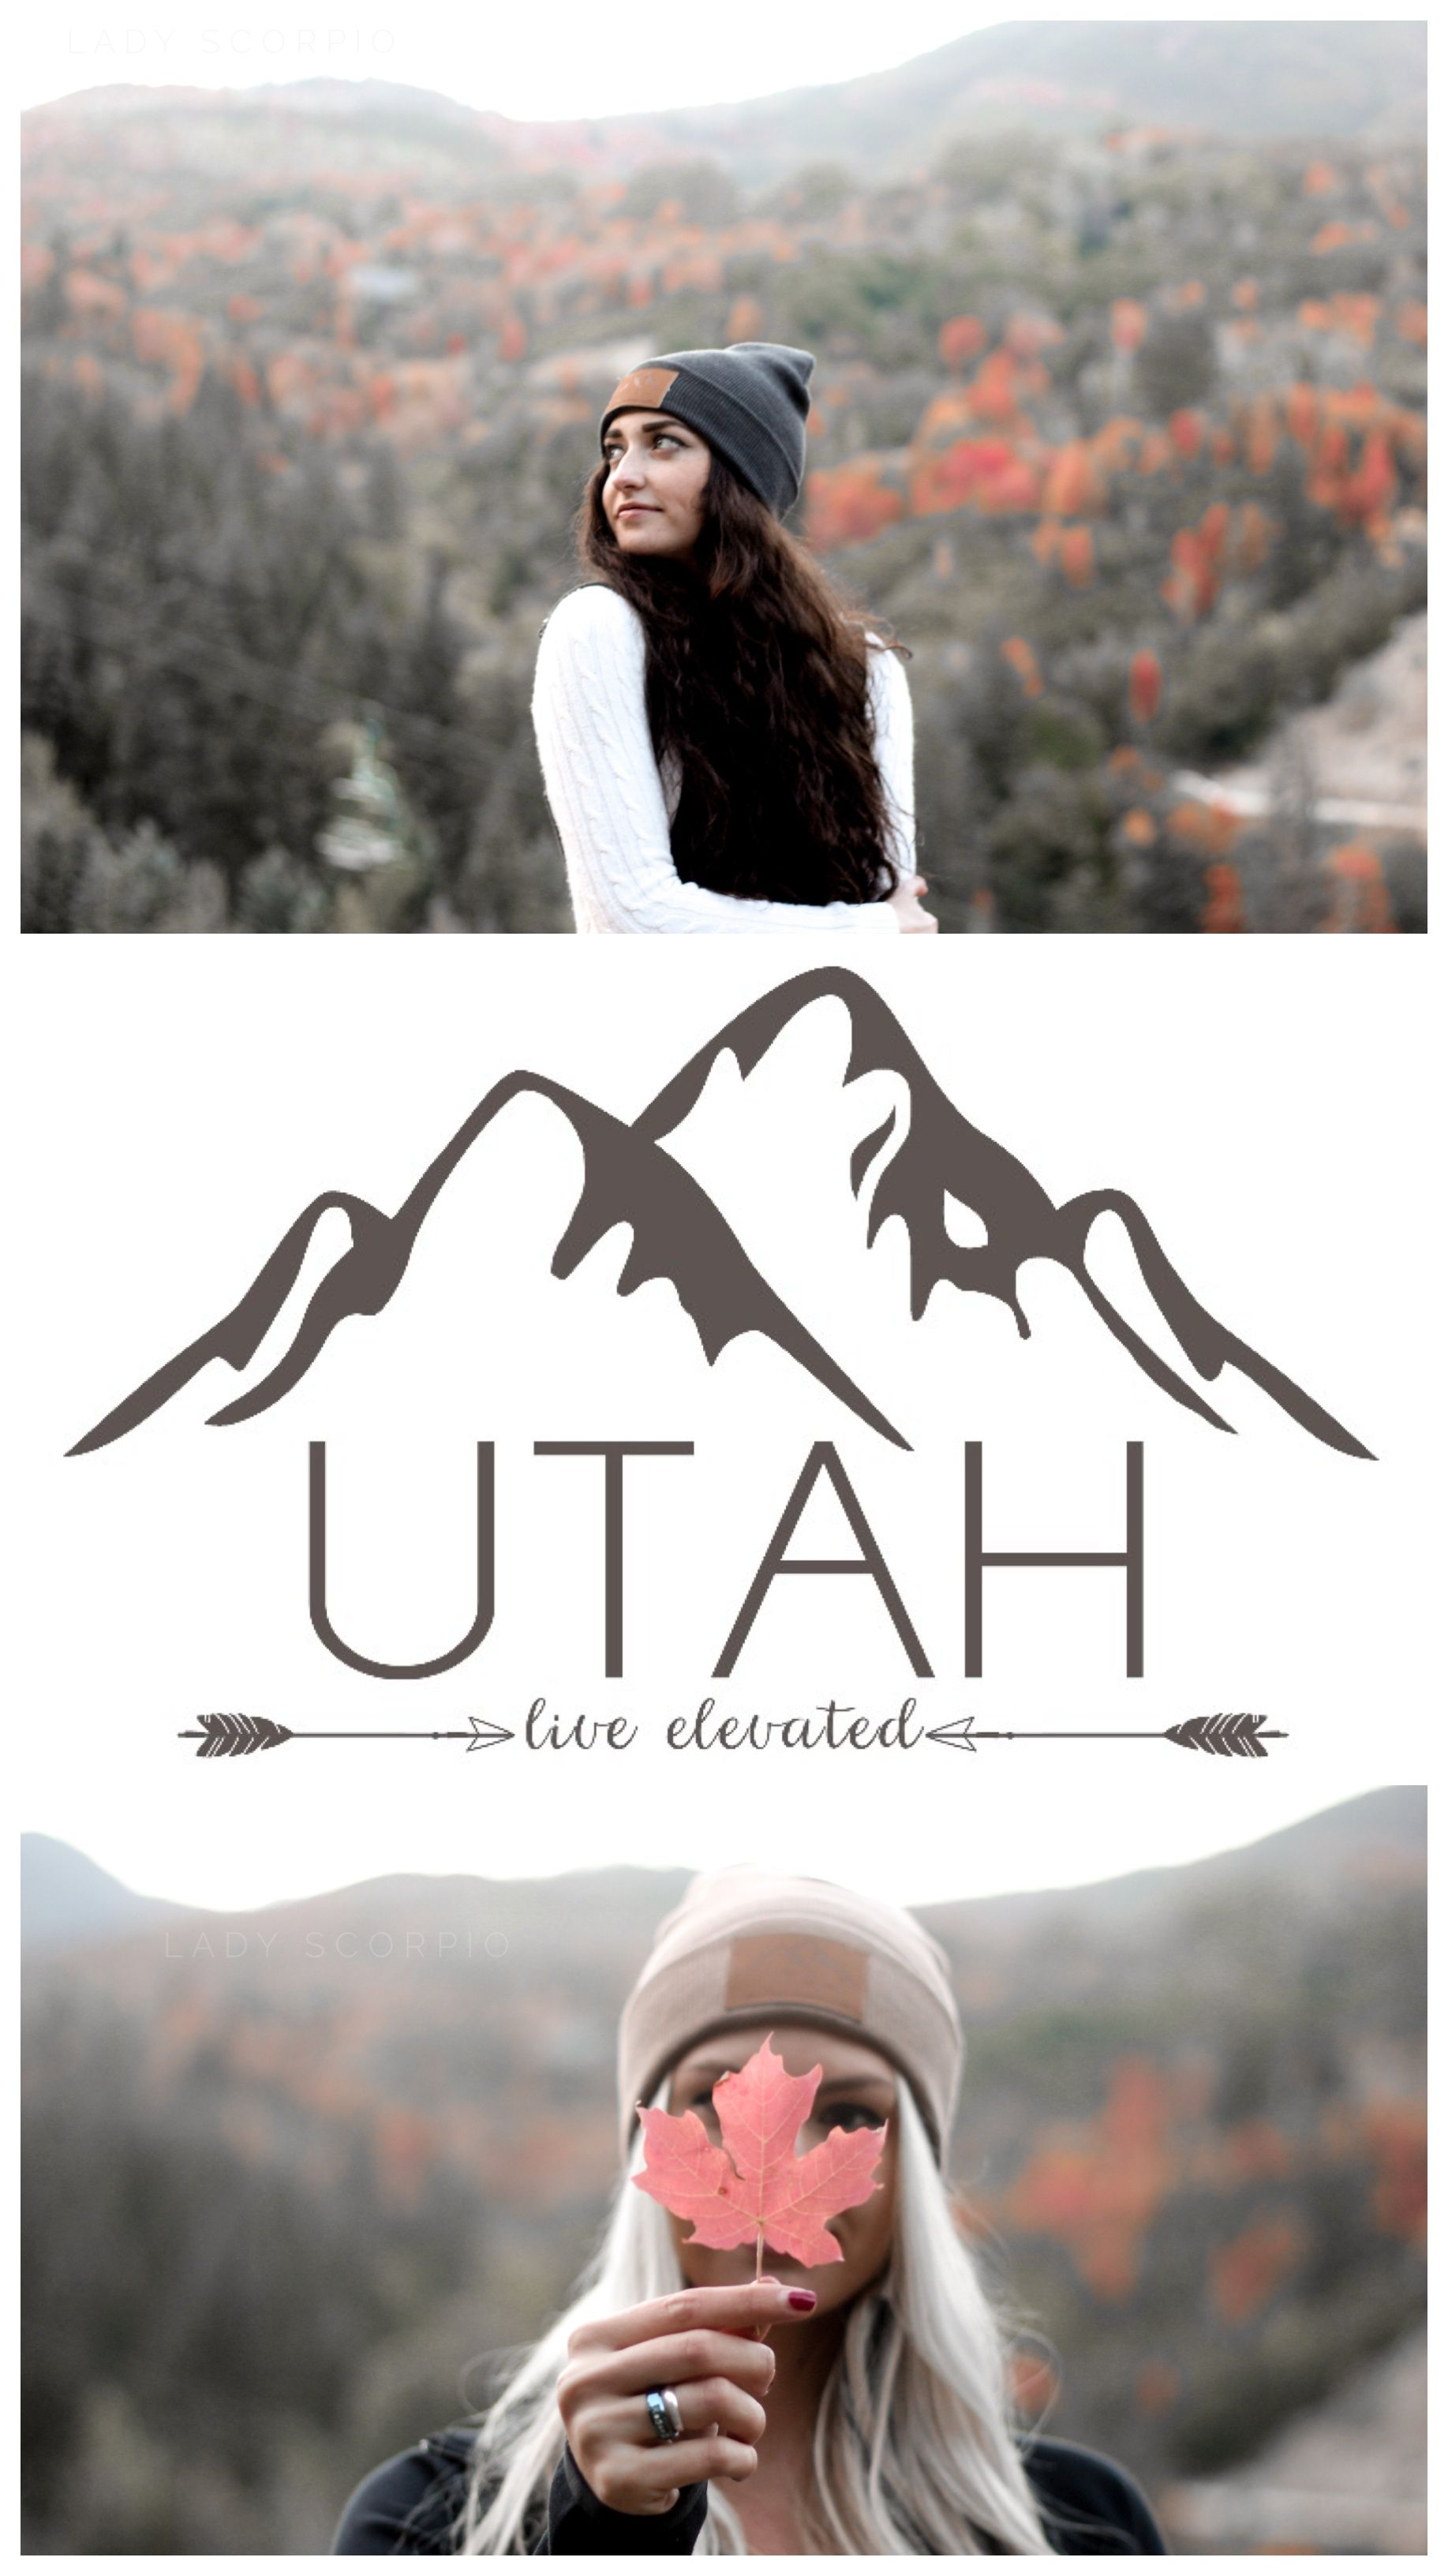 Autumn Leaves  Utah Live Elevated ▵ Wanderlust up Sundance during Fall  Save 25% off all orders with code PINTERESTXO at checkout | Adventure Fashion Shop LadyScorpio101.com | @LadyScorpio101 ≫ Wearing an Everwear Bracelet (Shop Everwear101 on Etsy) : Photography Luna Blue @Luna8lue Brunette Model Allie Slater Blonde Savannah Brazil